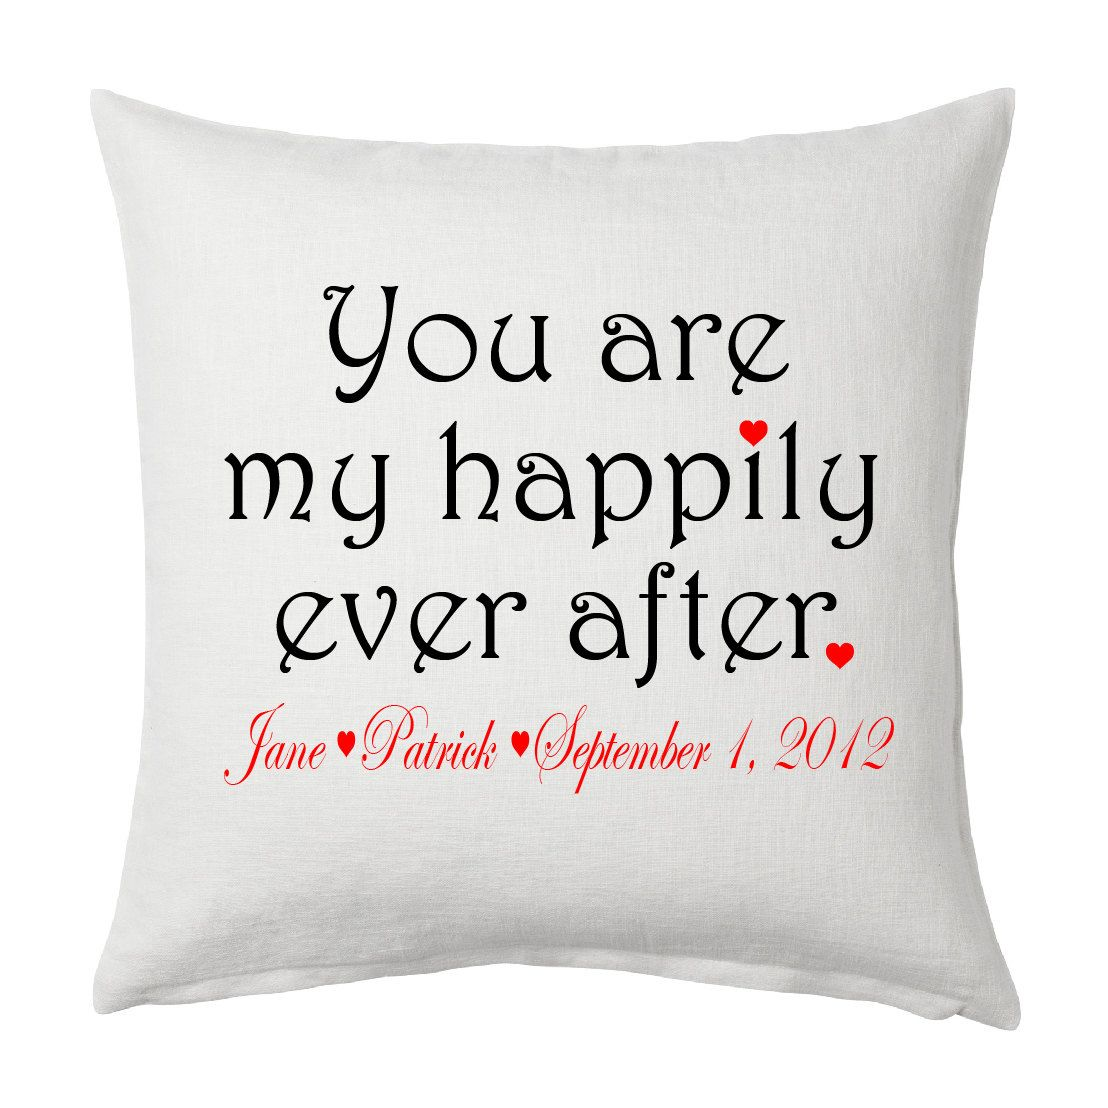 Personalized throw pillow. You are my happily ever after. Great ...